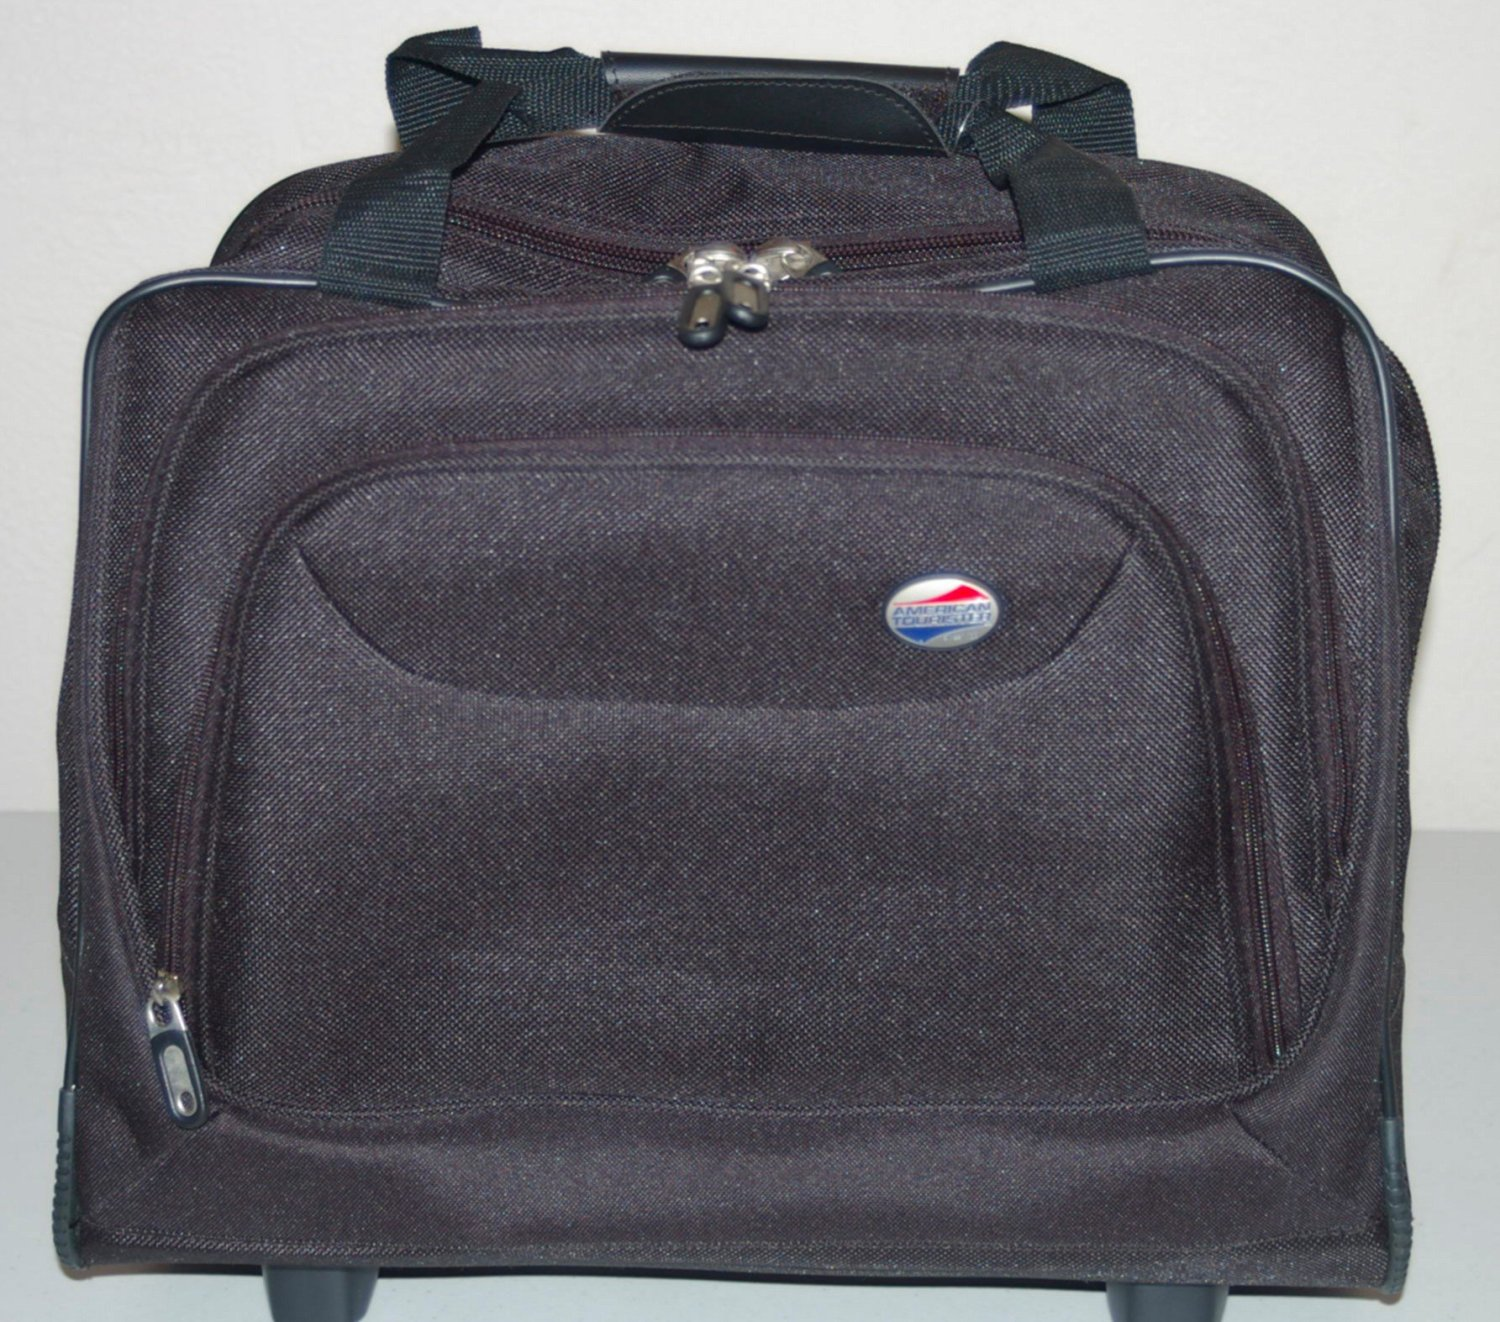 3008f990f198 Buy American Tourister FlyLite III Wheeled Boarding Bag